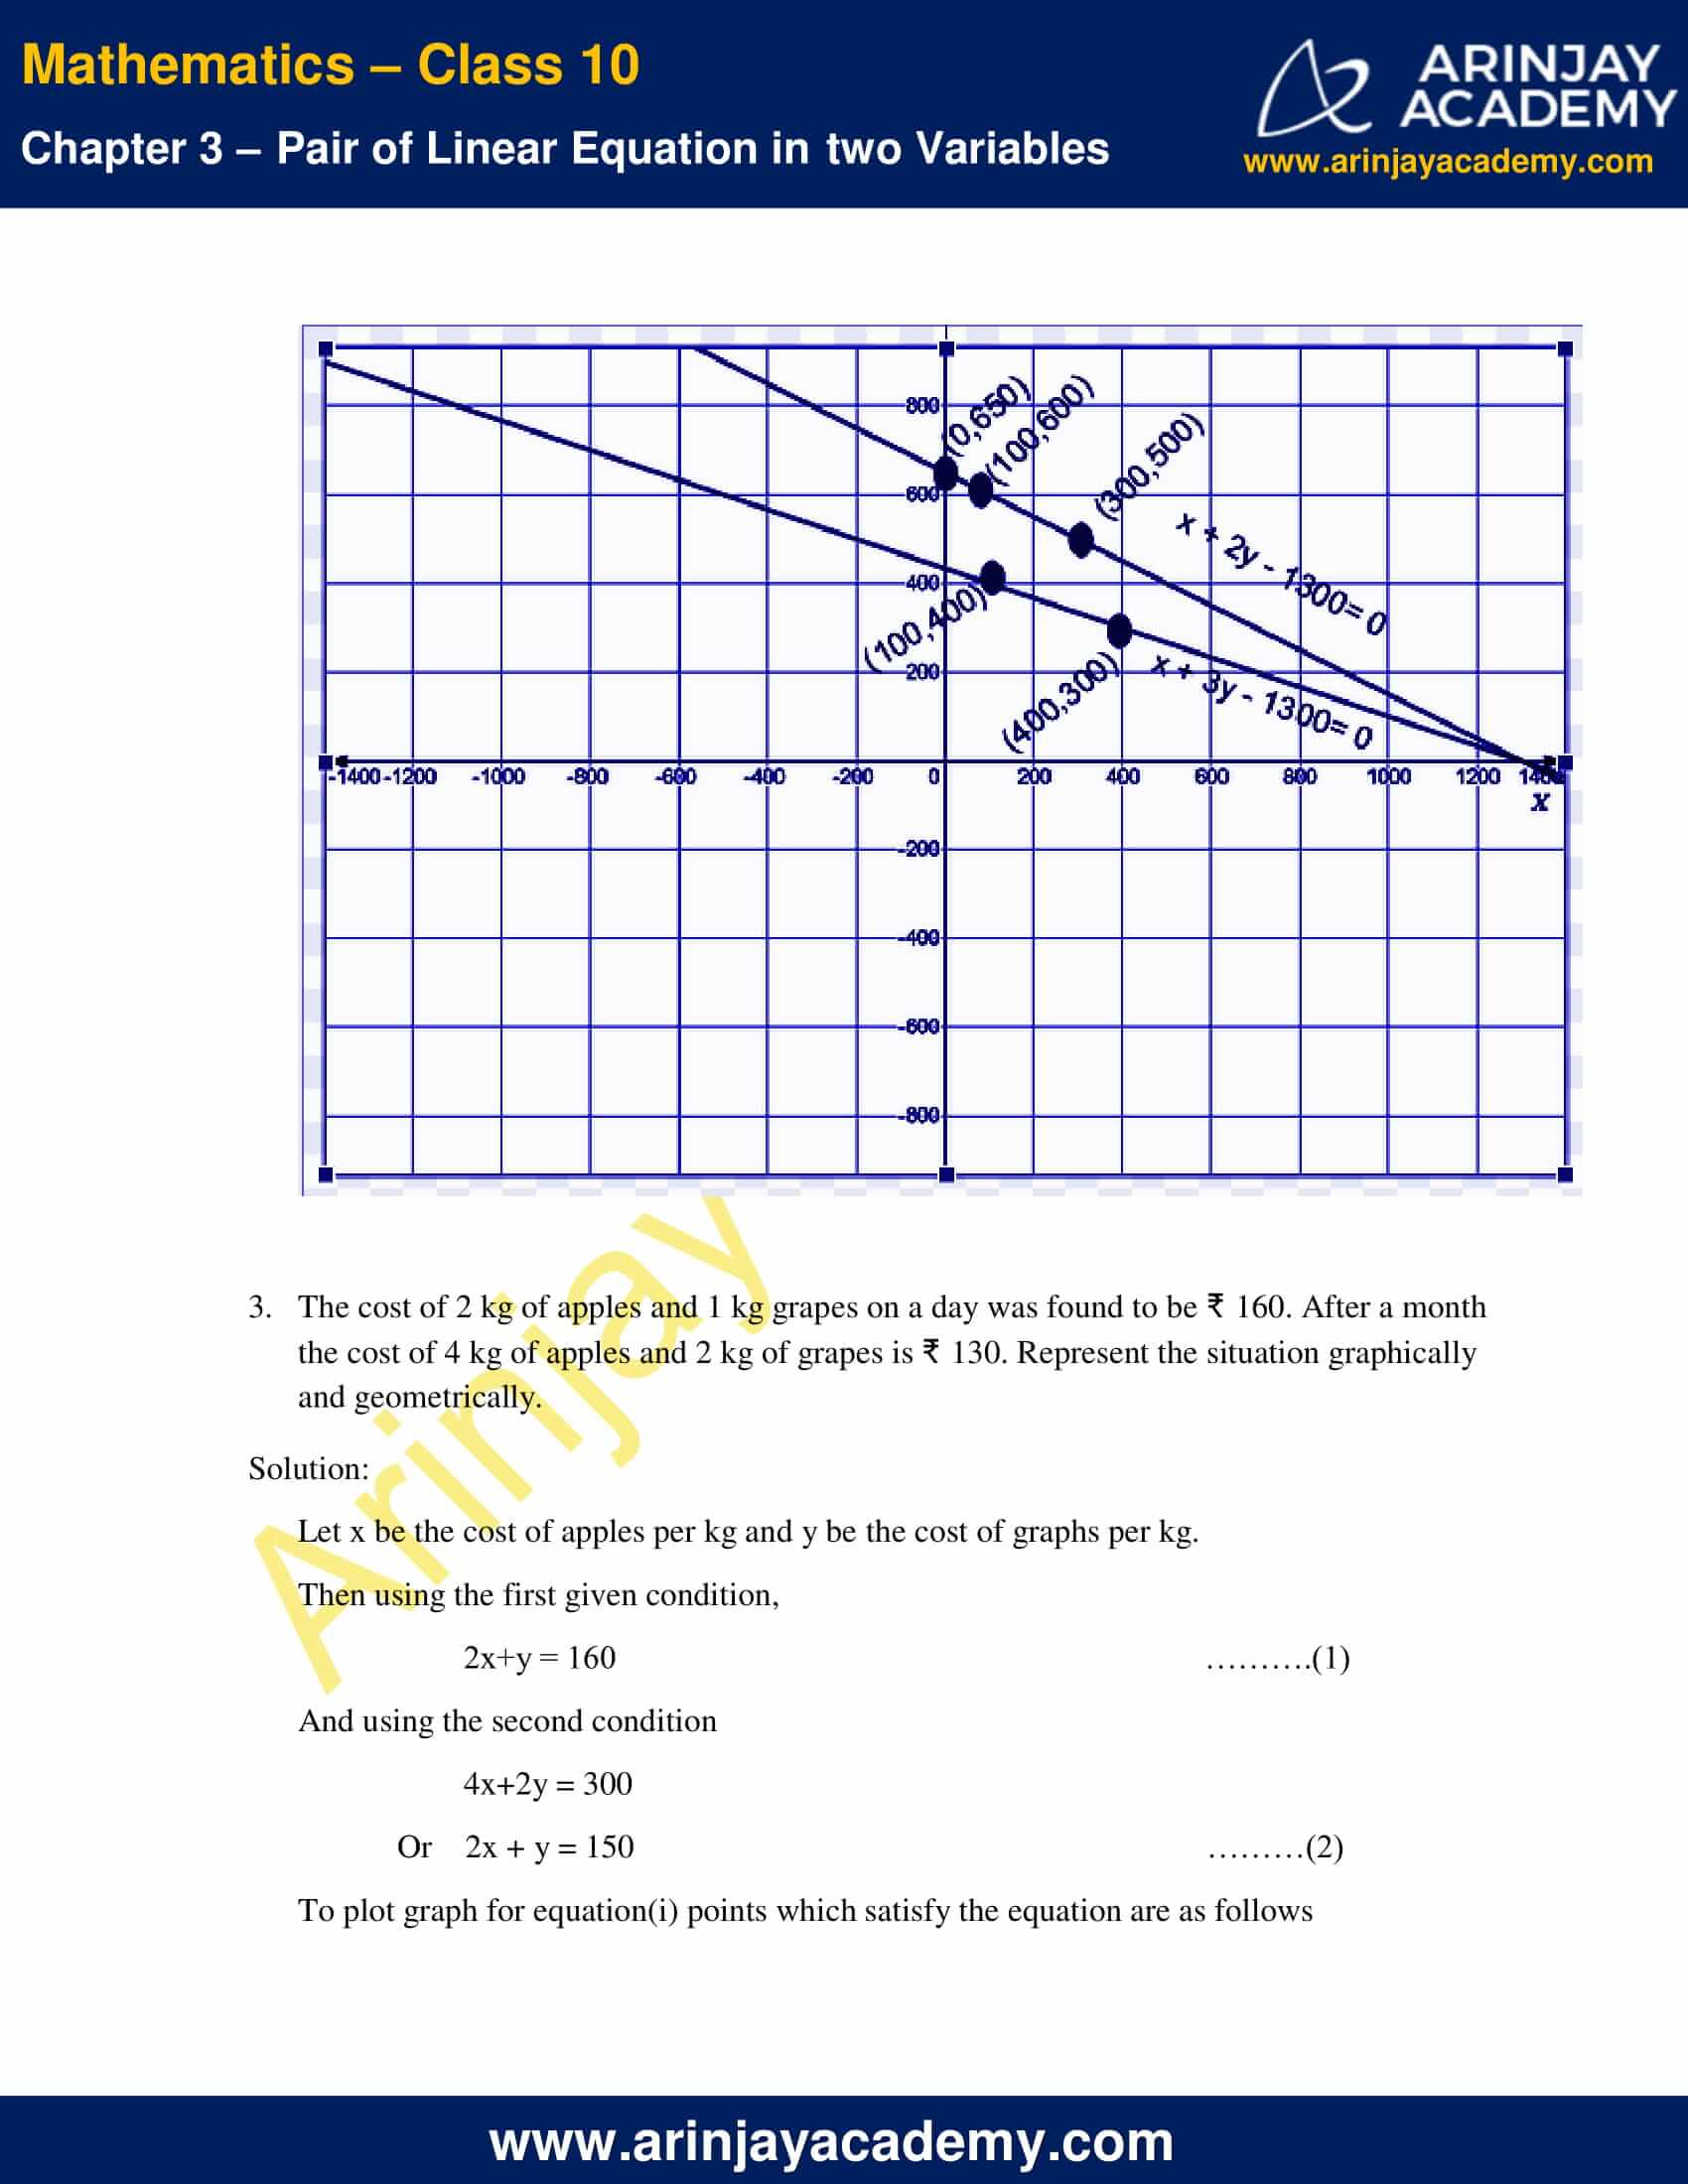 NCERT Solutions For Class 10 Maths Chapter 3 Exercise 3.1 image 4